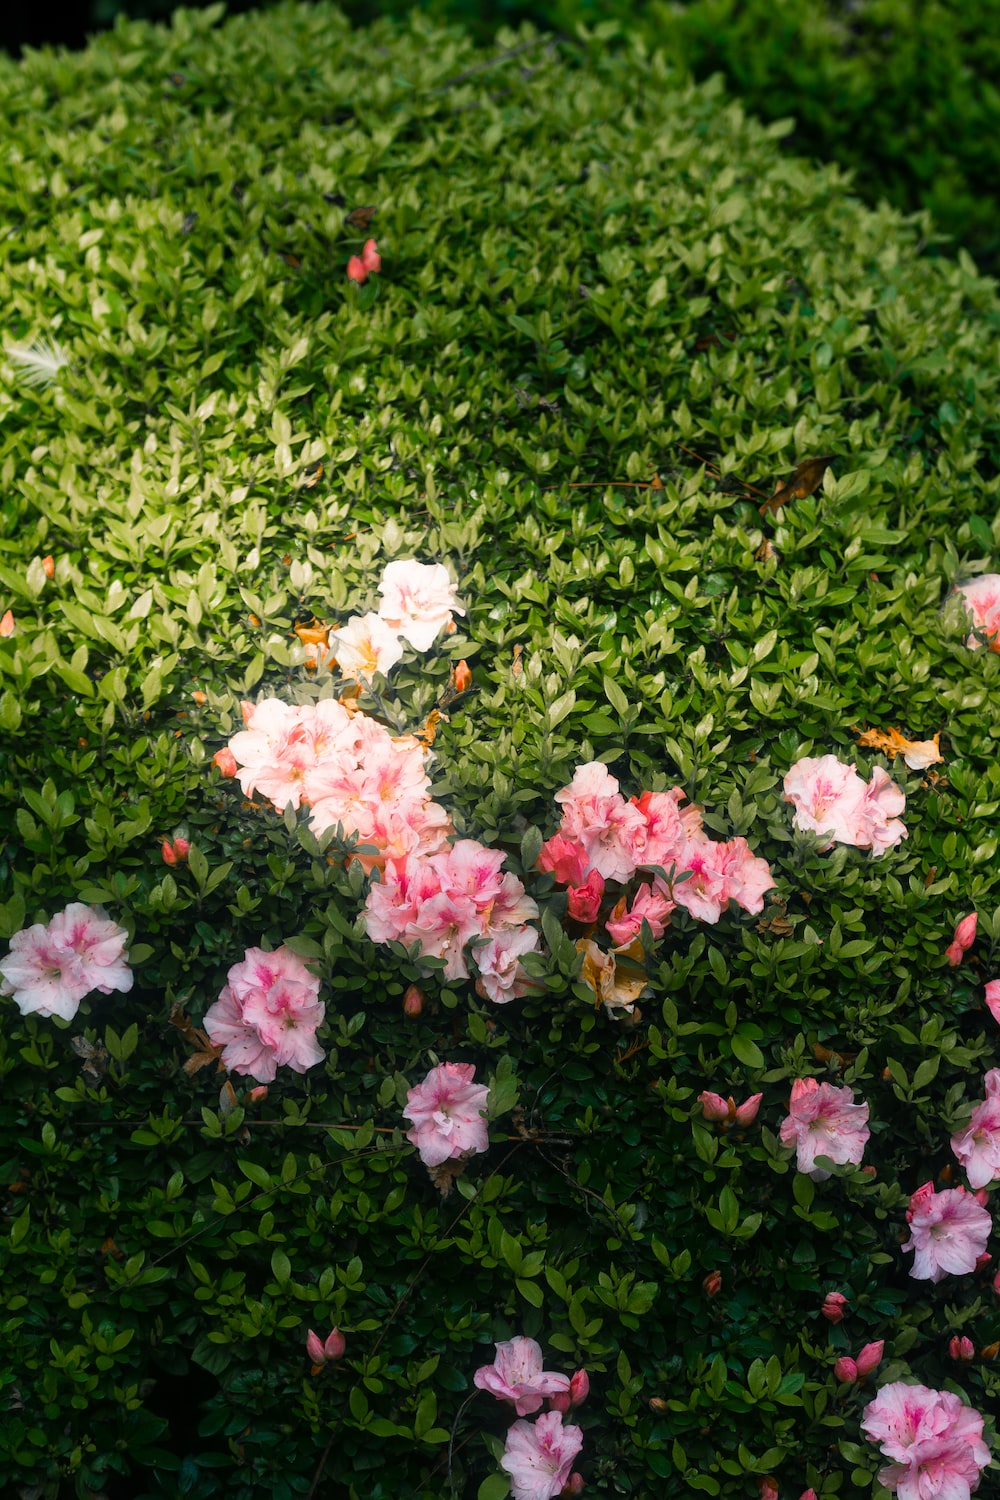 pink and white flowers on green grass